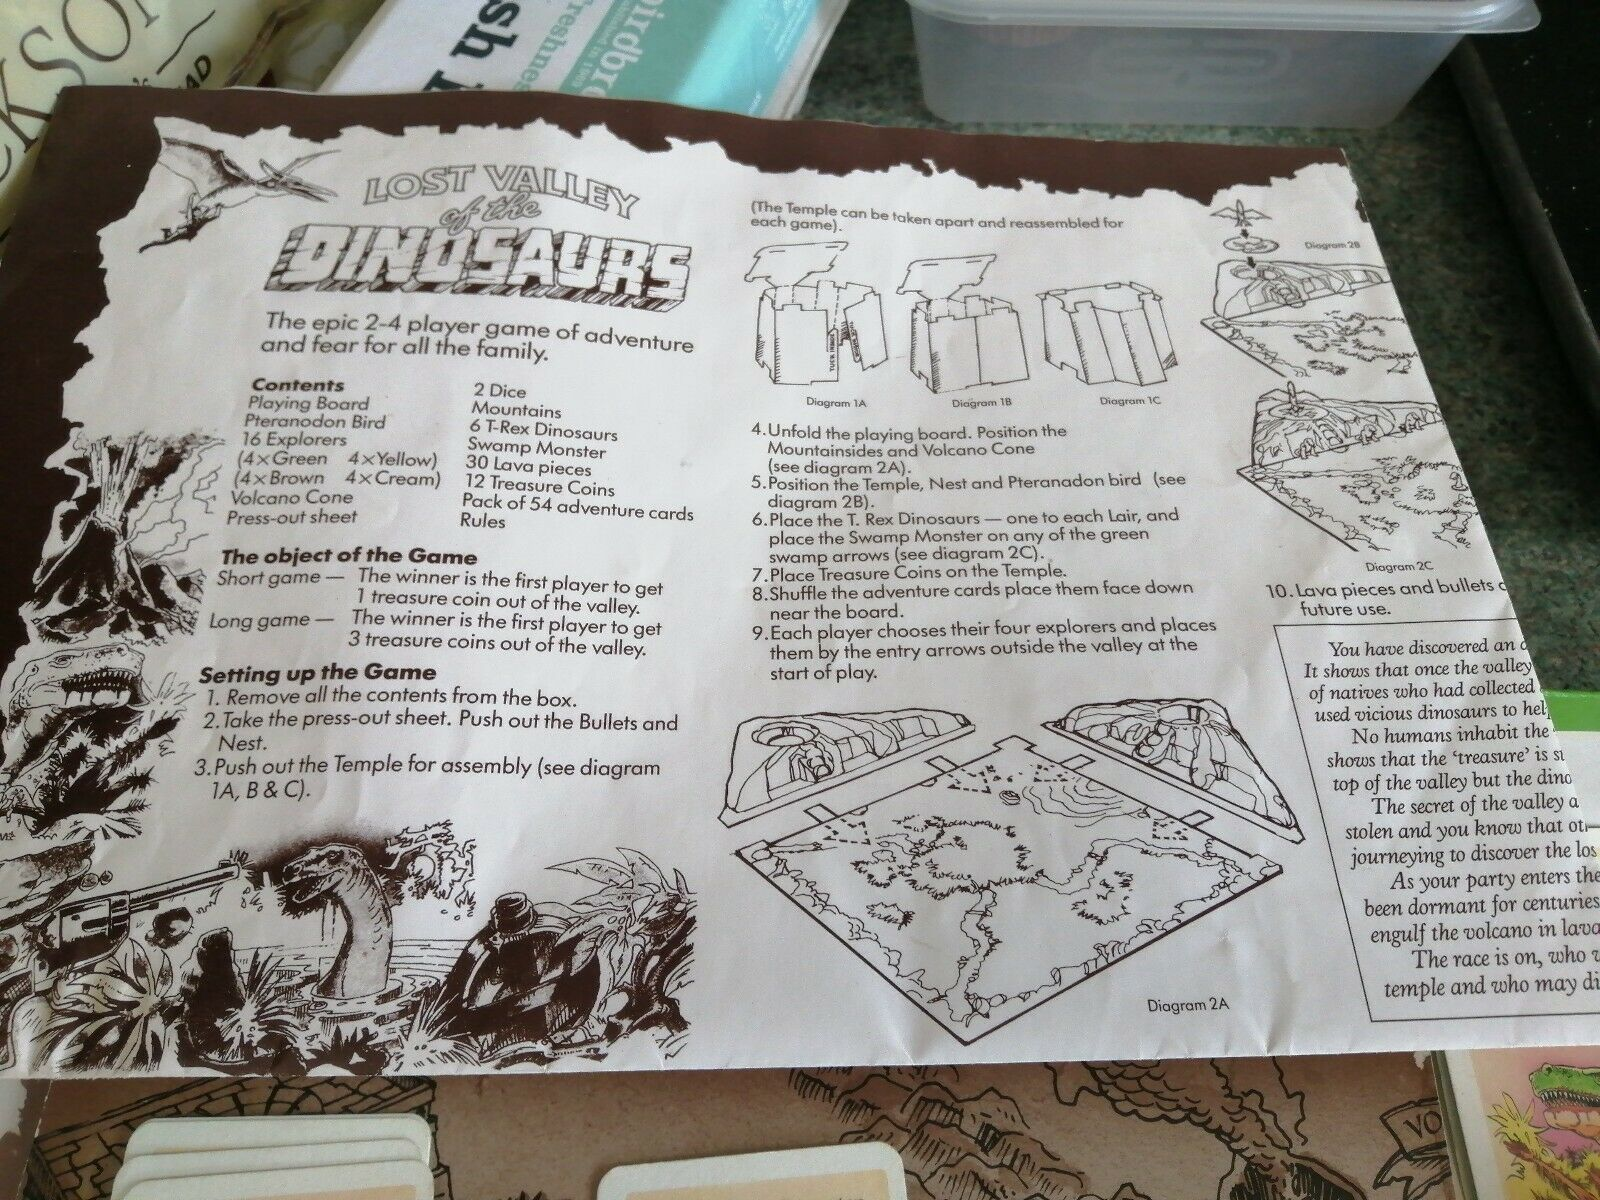 Lost Valley Of The Dinosaurs 1985 Boardgame spare parts 3 x treasure coins